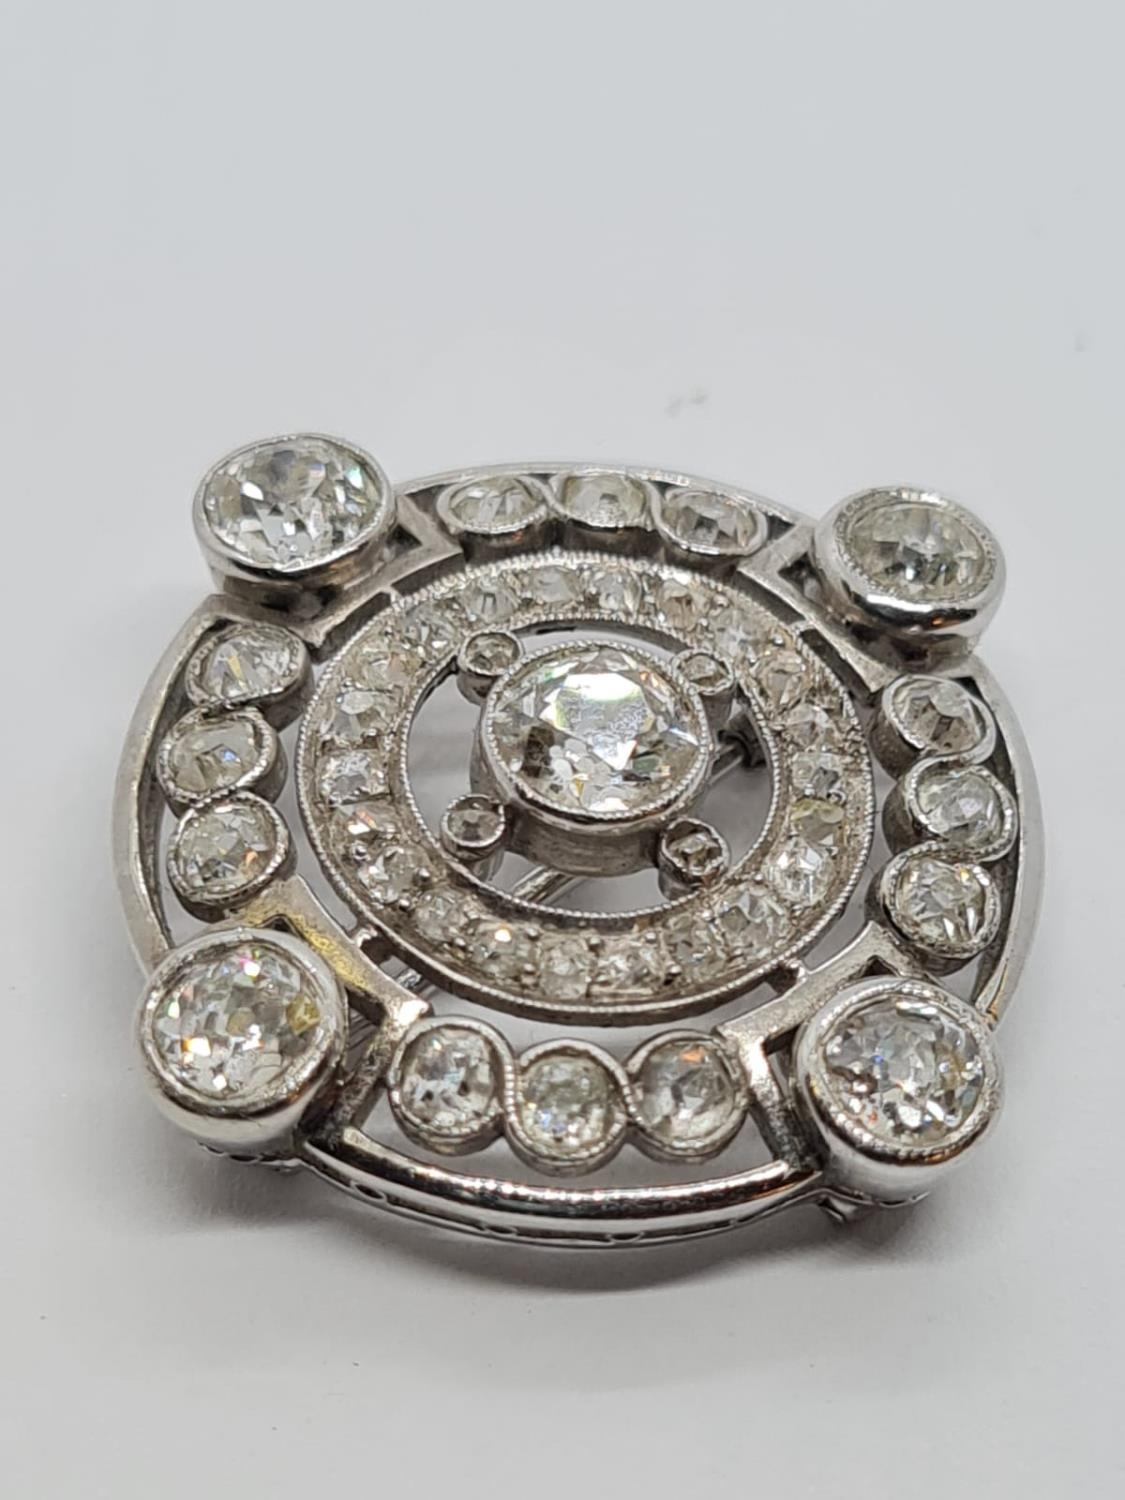 Vintage 18ct Gold and Diamond BROOCH having over 3 ct of fine quality of Diamonds. 8.3g 2.5 cm - Image 2 of 4